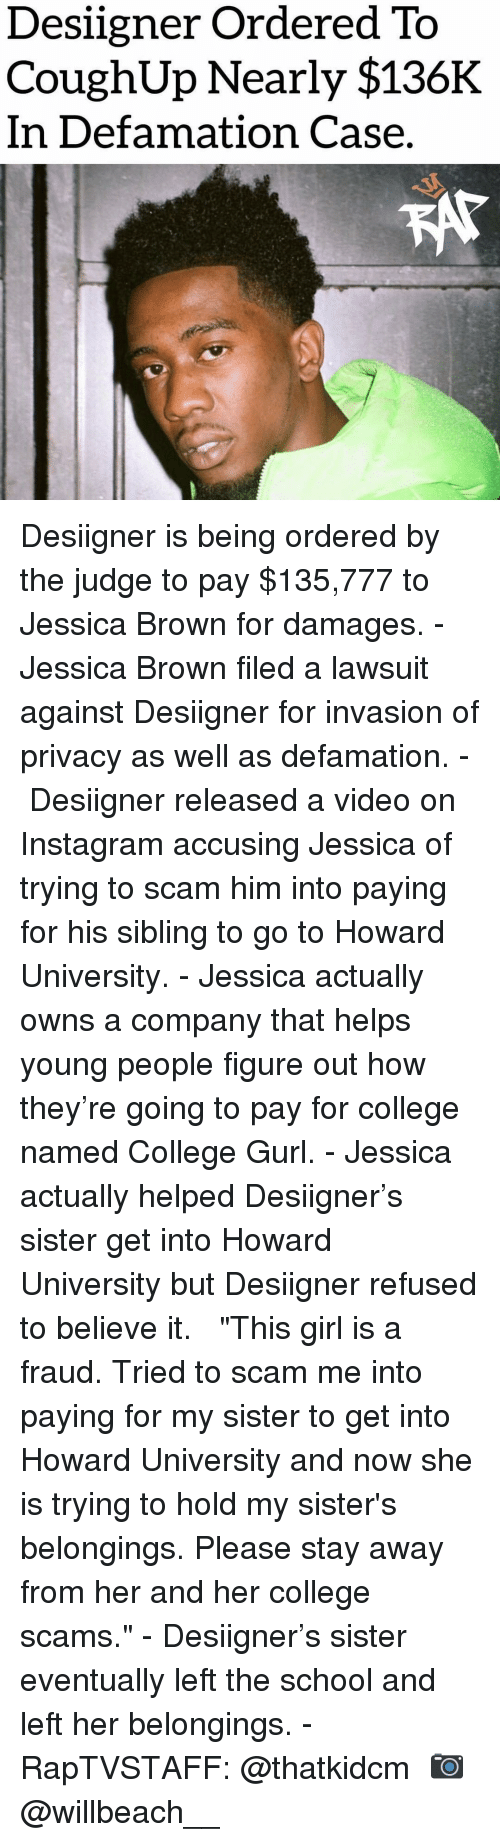 "College, Instagram, and Memes: Desiigner Ordered To  CoughUp Nearly $136K  In Defamation Case Desiigner is being ordered by the judge to pay $135,777 to Jessica Brown for damages.⁣ -⁣ Jessica Brown filed a lawsuit against Desiigner for invasion of privacy as well as defamation.⁣ -⁣ Desiigner released a video on Instagram accusing Jessica of trying to scam him into paying for his sibling to go to Howard University.⁣ -⁣ Jessica actually owns a company that helps young people figure out how they're going to pay for college named College Gurl.⁣ -⁣ Jessica actually helped Desiigner's sister get into Howard University but Desiigner refused to believe it. ⁣ ⁣ ""This girl is a fraud. Tried to scam me into paying for my sister to get into Howard University and now she is trying to hold my sister's belongings. Please stay away from her and her college scams.""⁣ -⁣ Desiigner's sister eventually left the school and left her belongings.⁣ -⁣ RapTVSTAFF: @thatkidcm⁣ 📷 @willbeach__⁣"